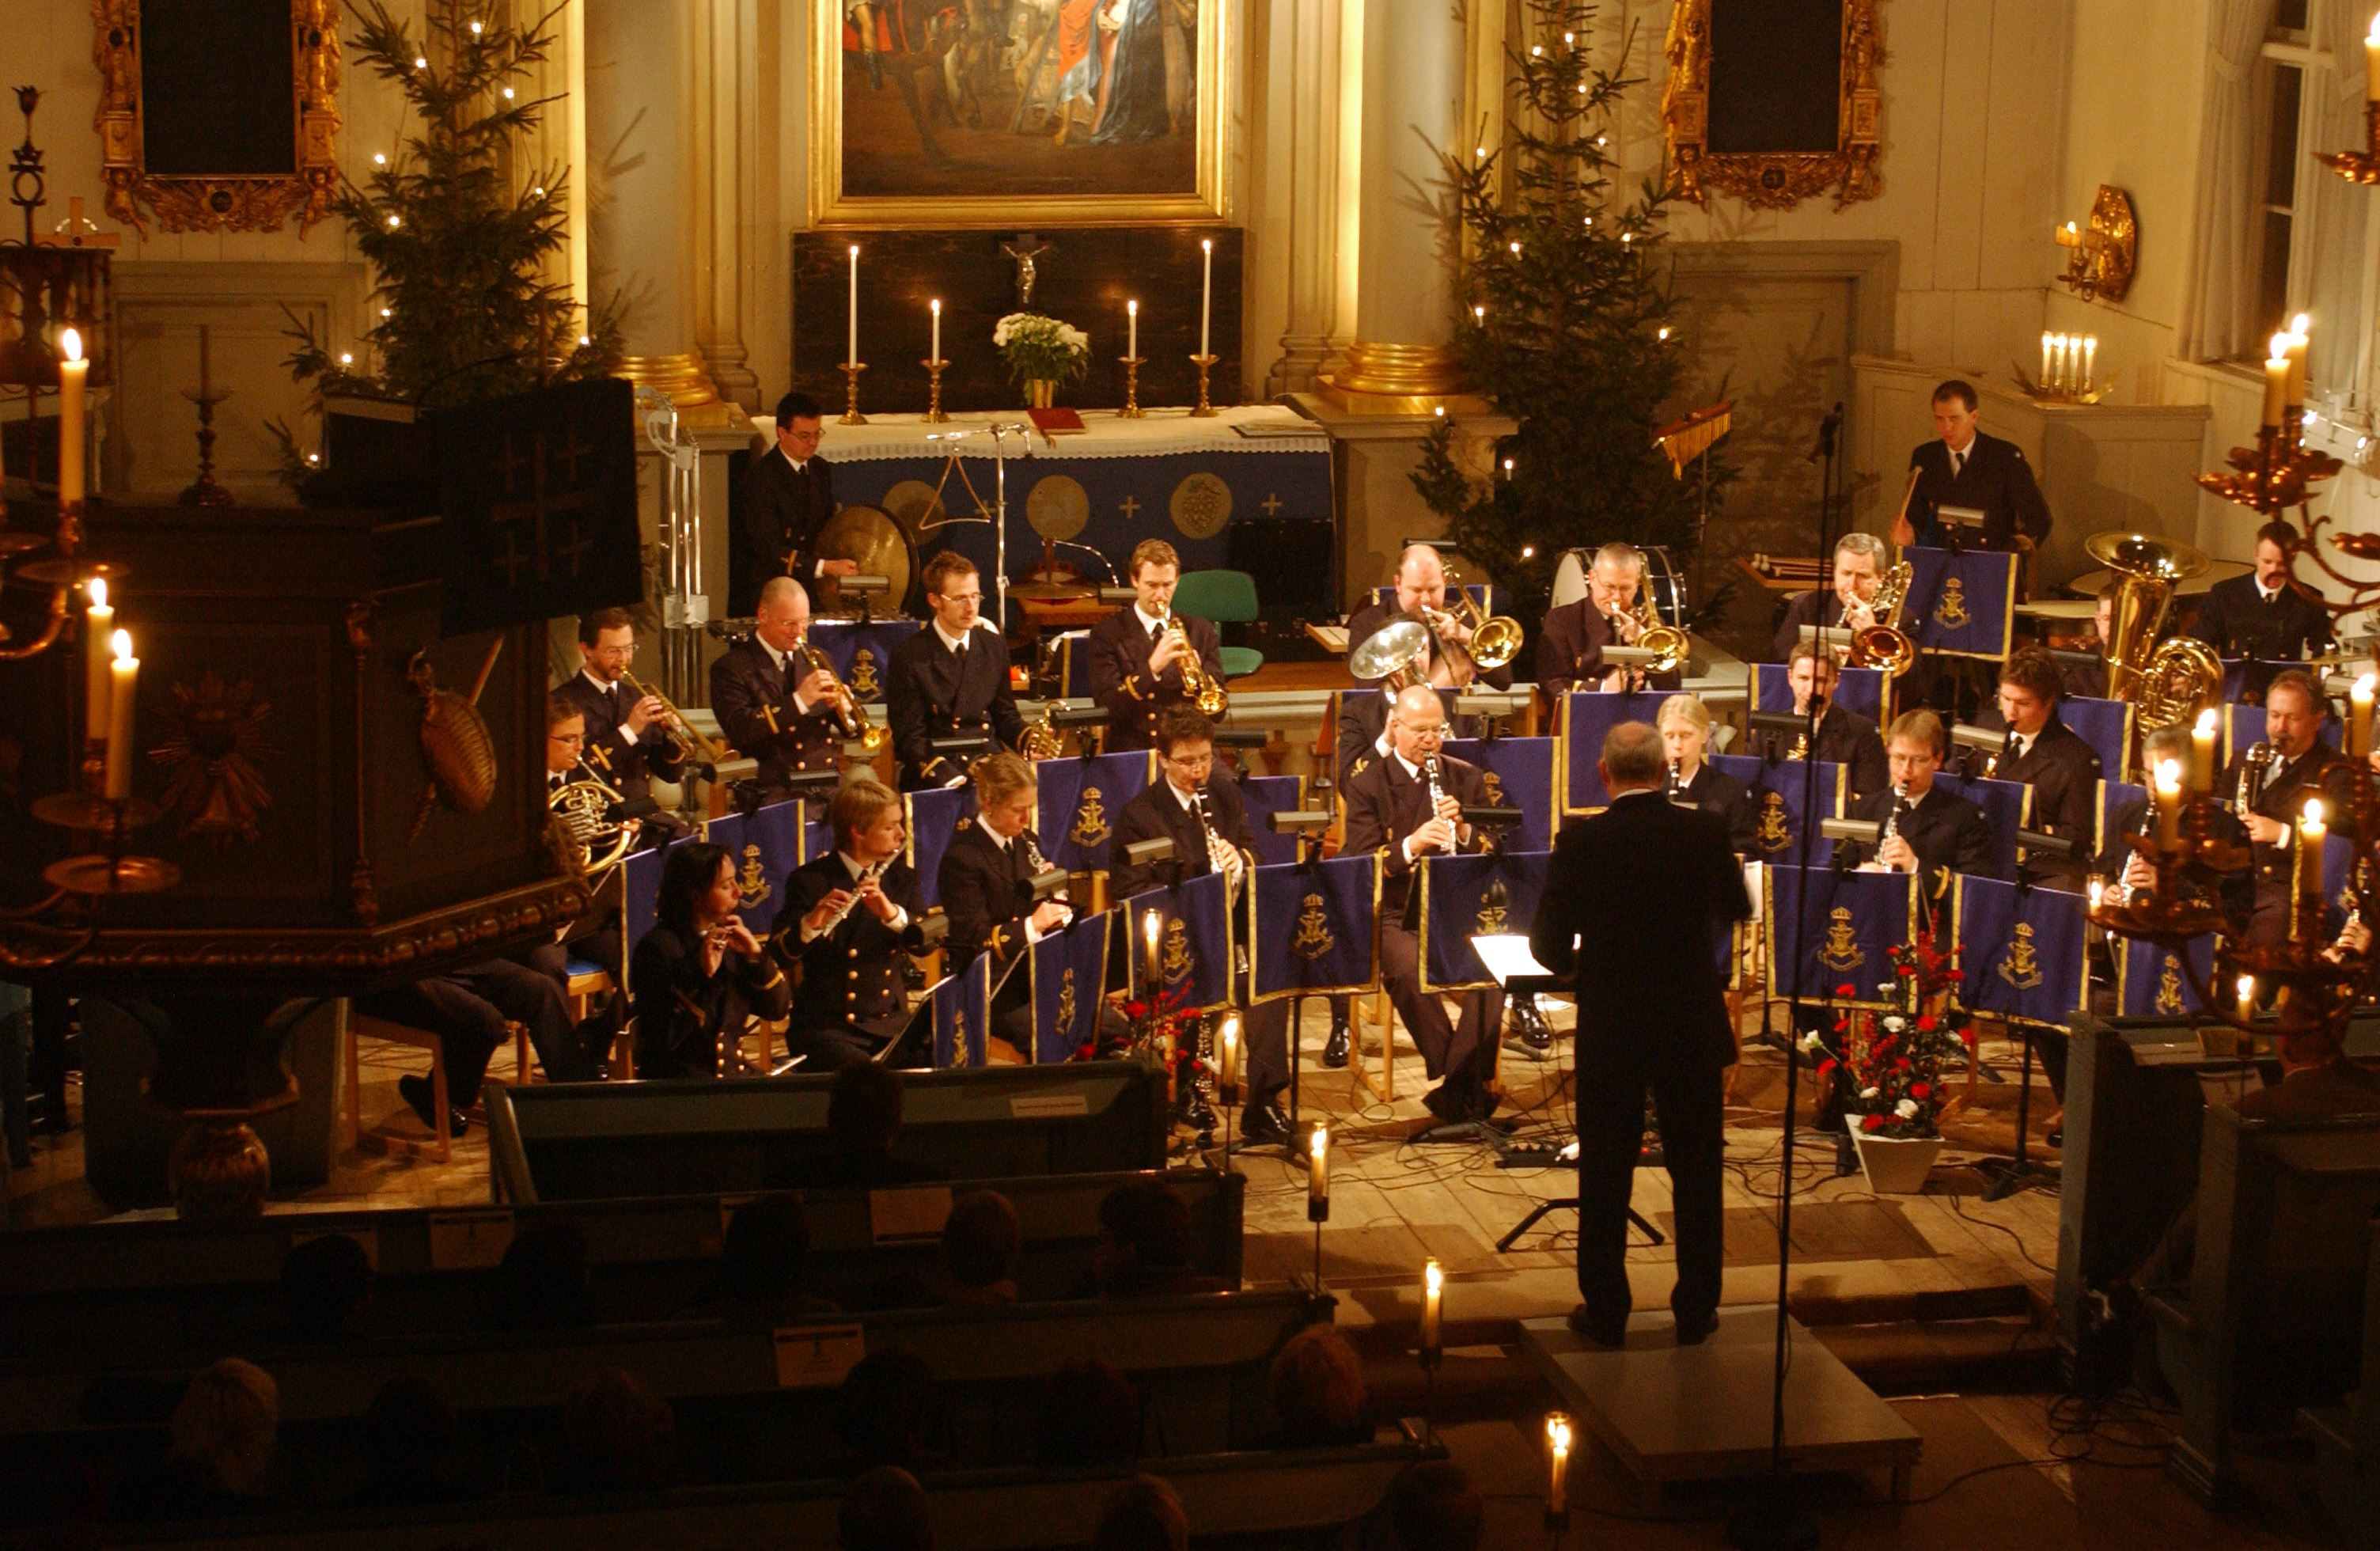 Advent concert - The Royal Swedish Navy Band